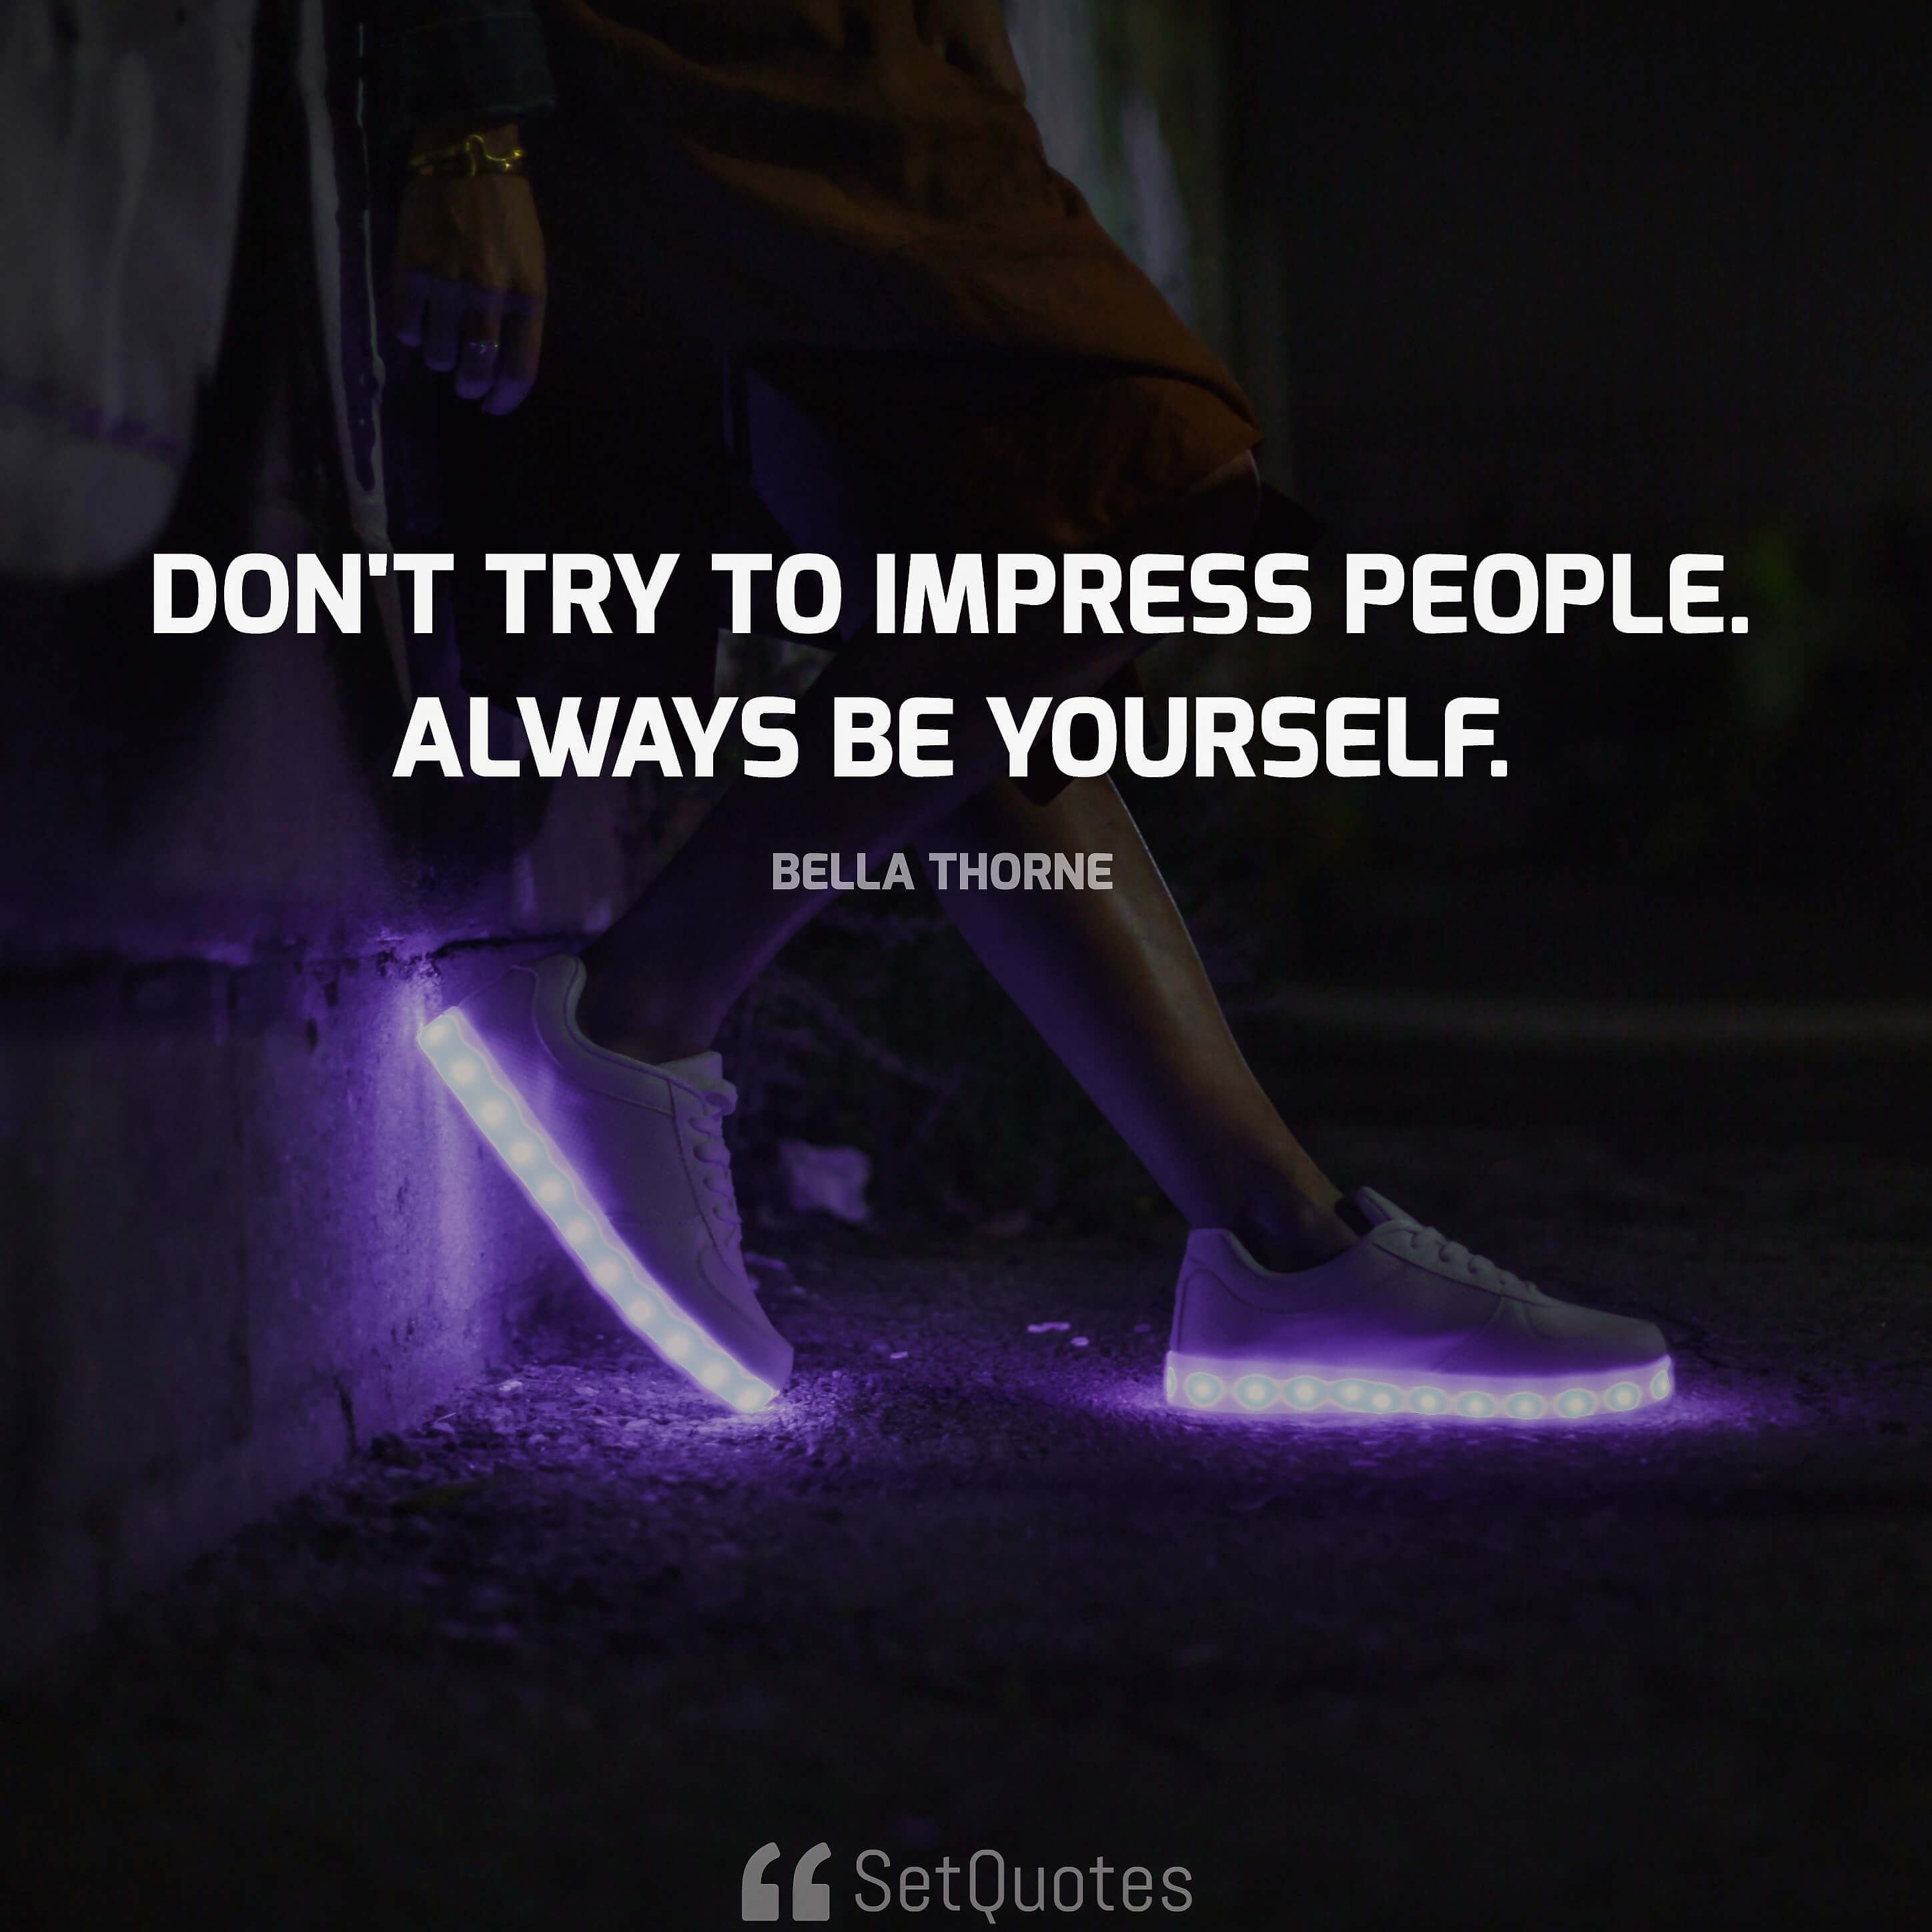 Don't try to impress people. Always be yourself. - Bella Thorne